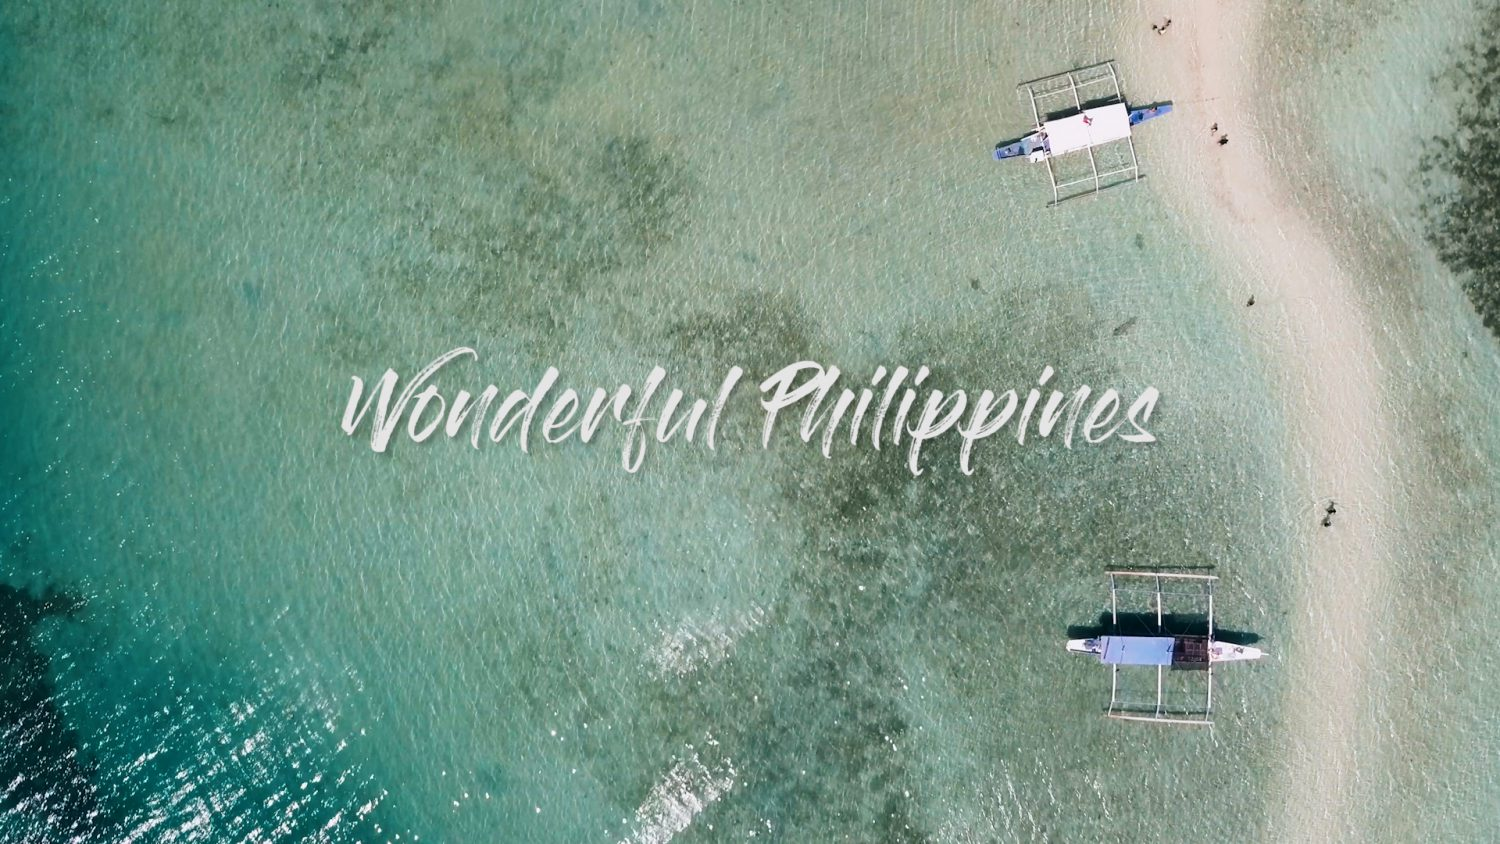 Wonderful Philippines